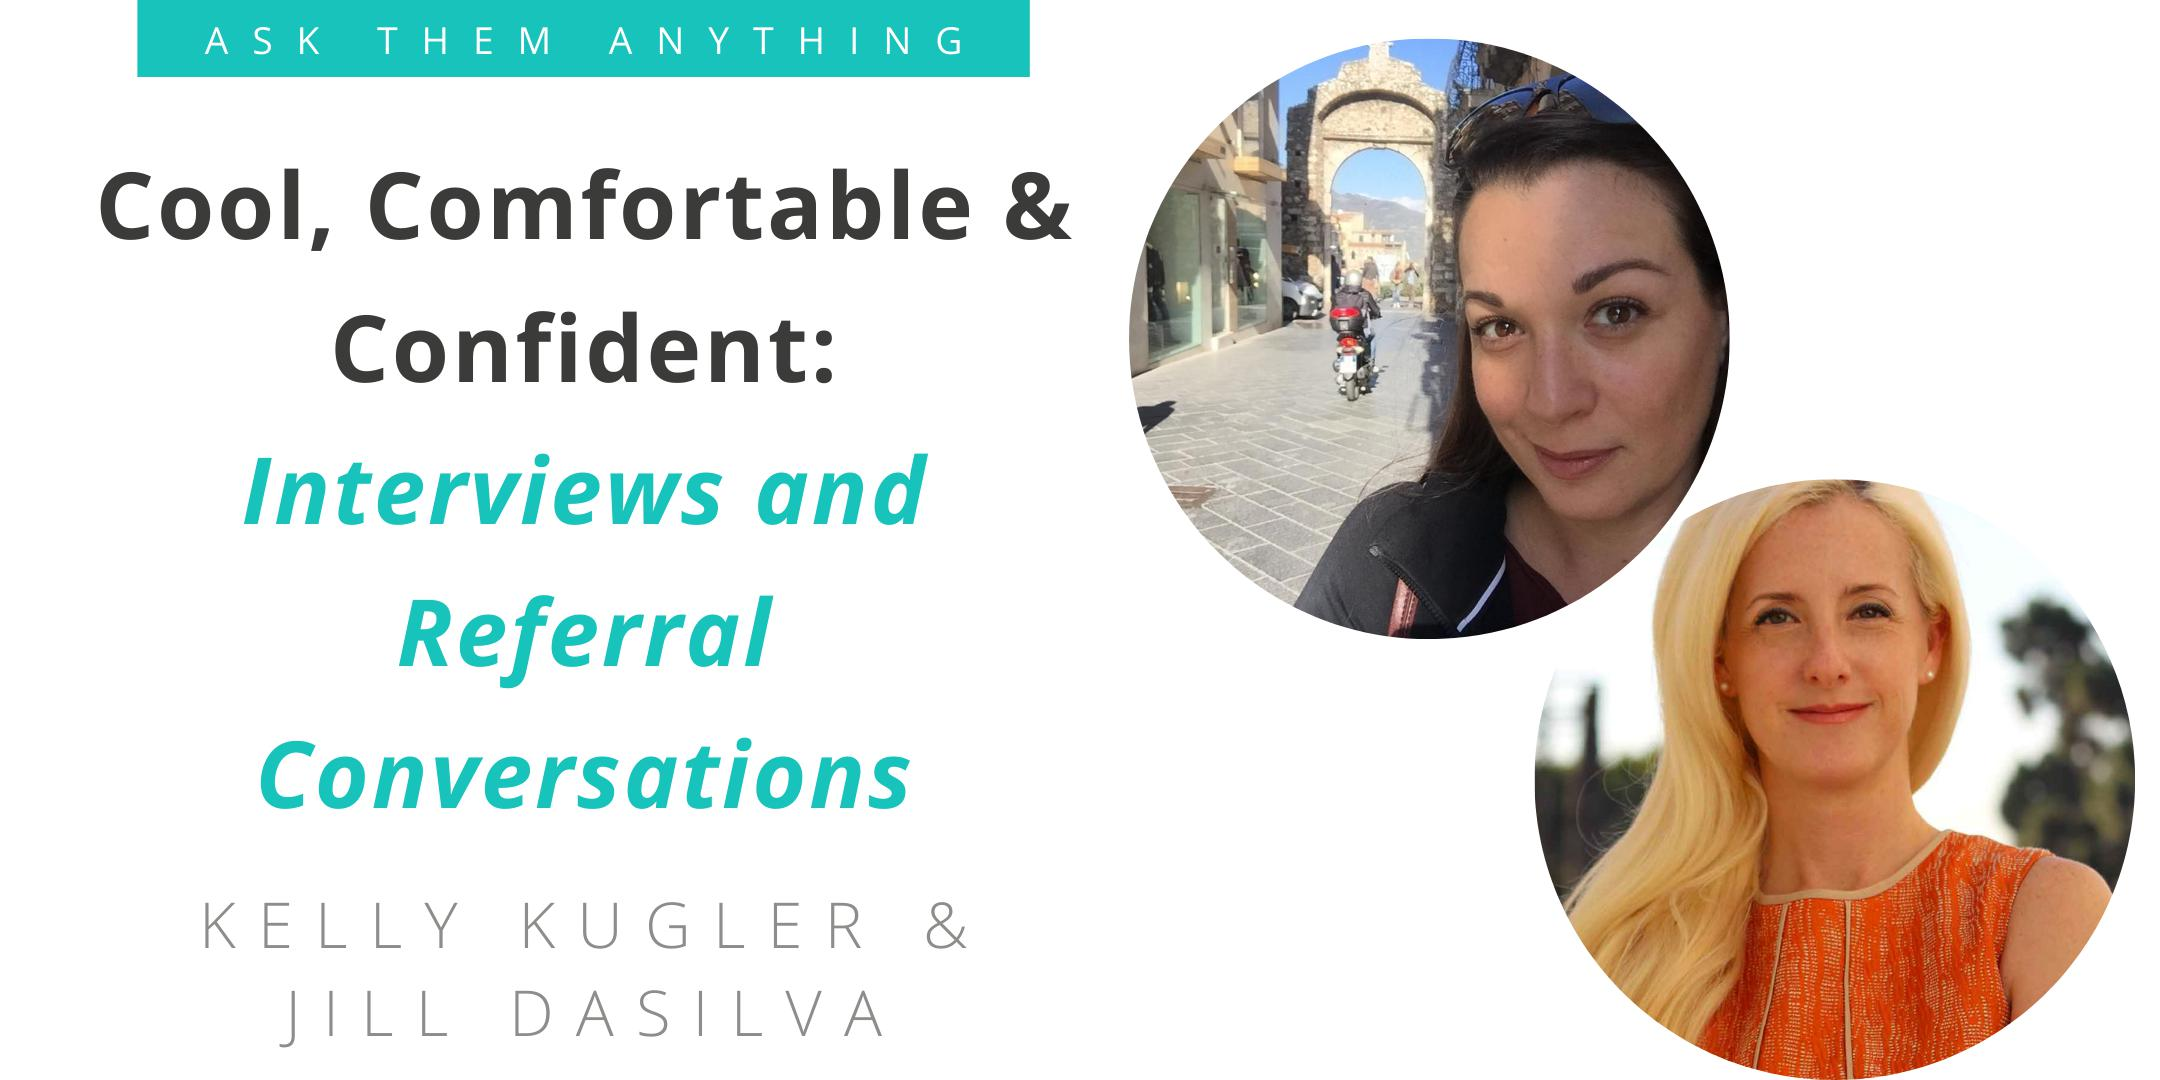 Cool, Comfortable & Confident: Interviews and Referral Conversations